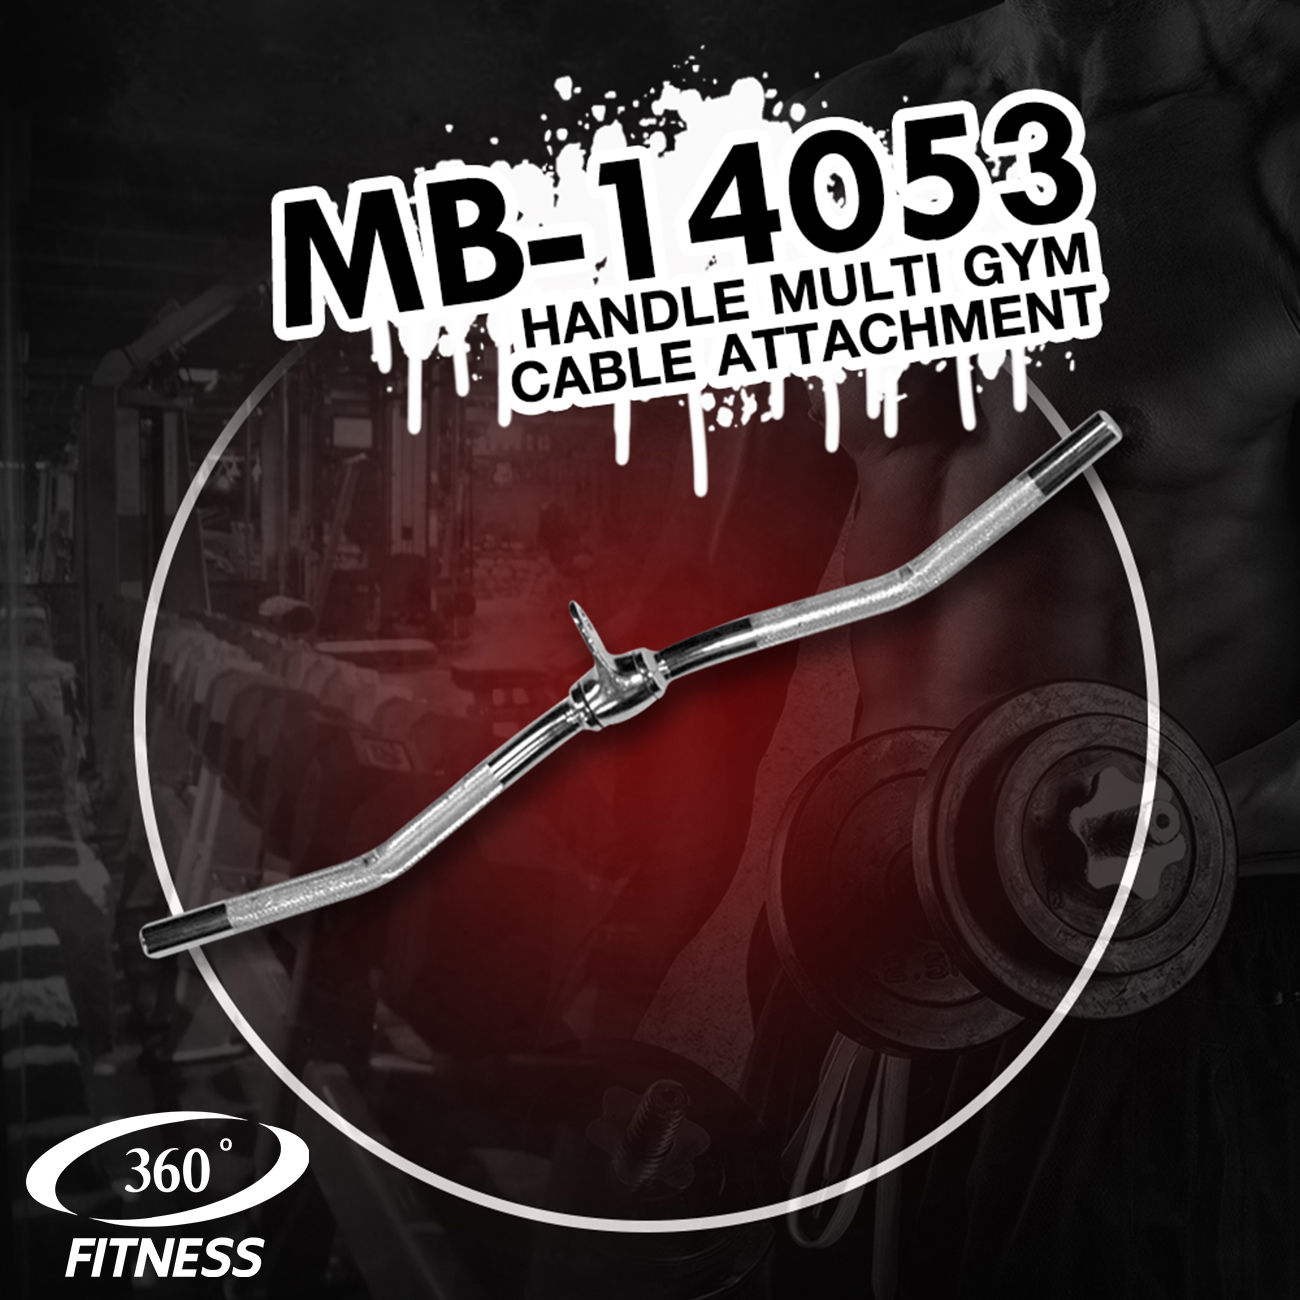 Handle Multi Gym Cable Attachment (MB-14053)